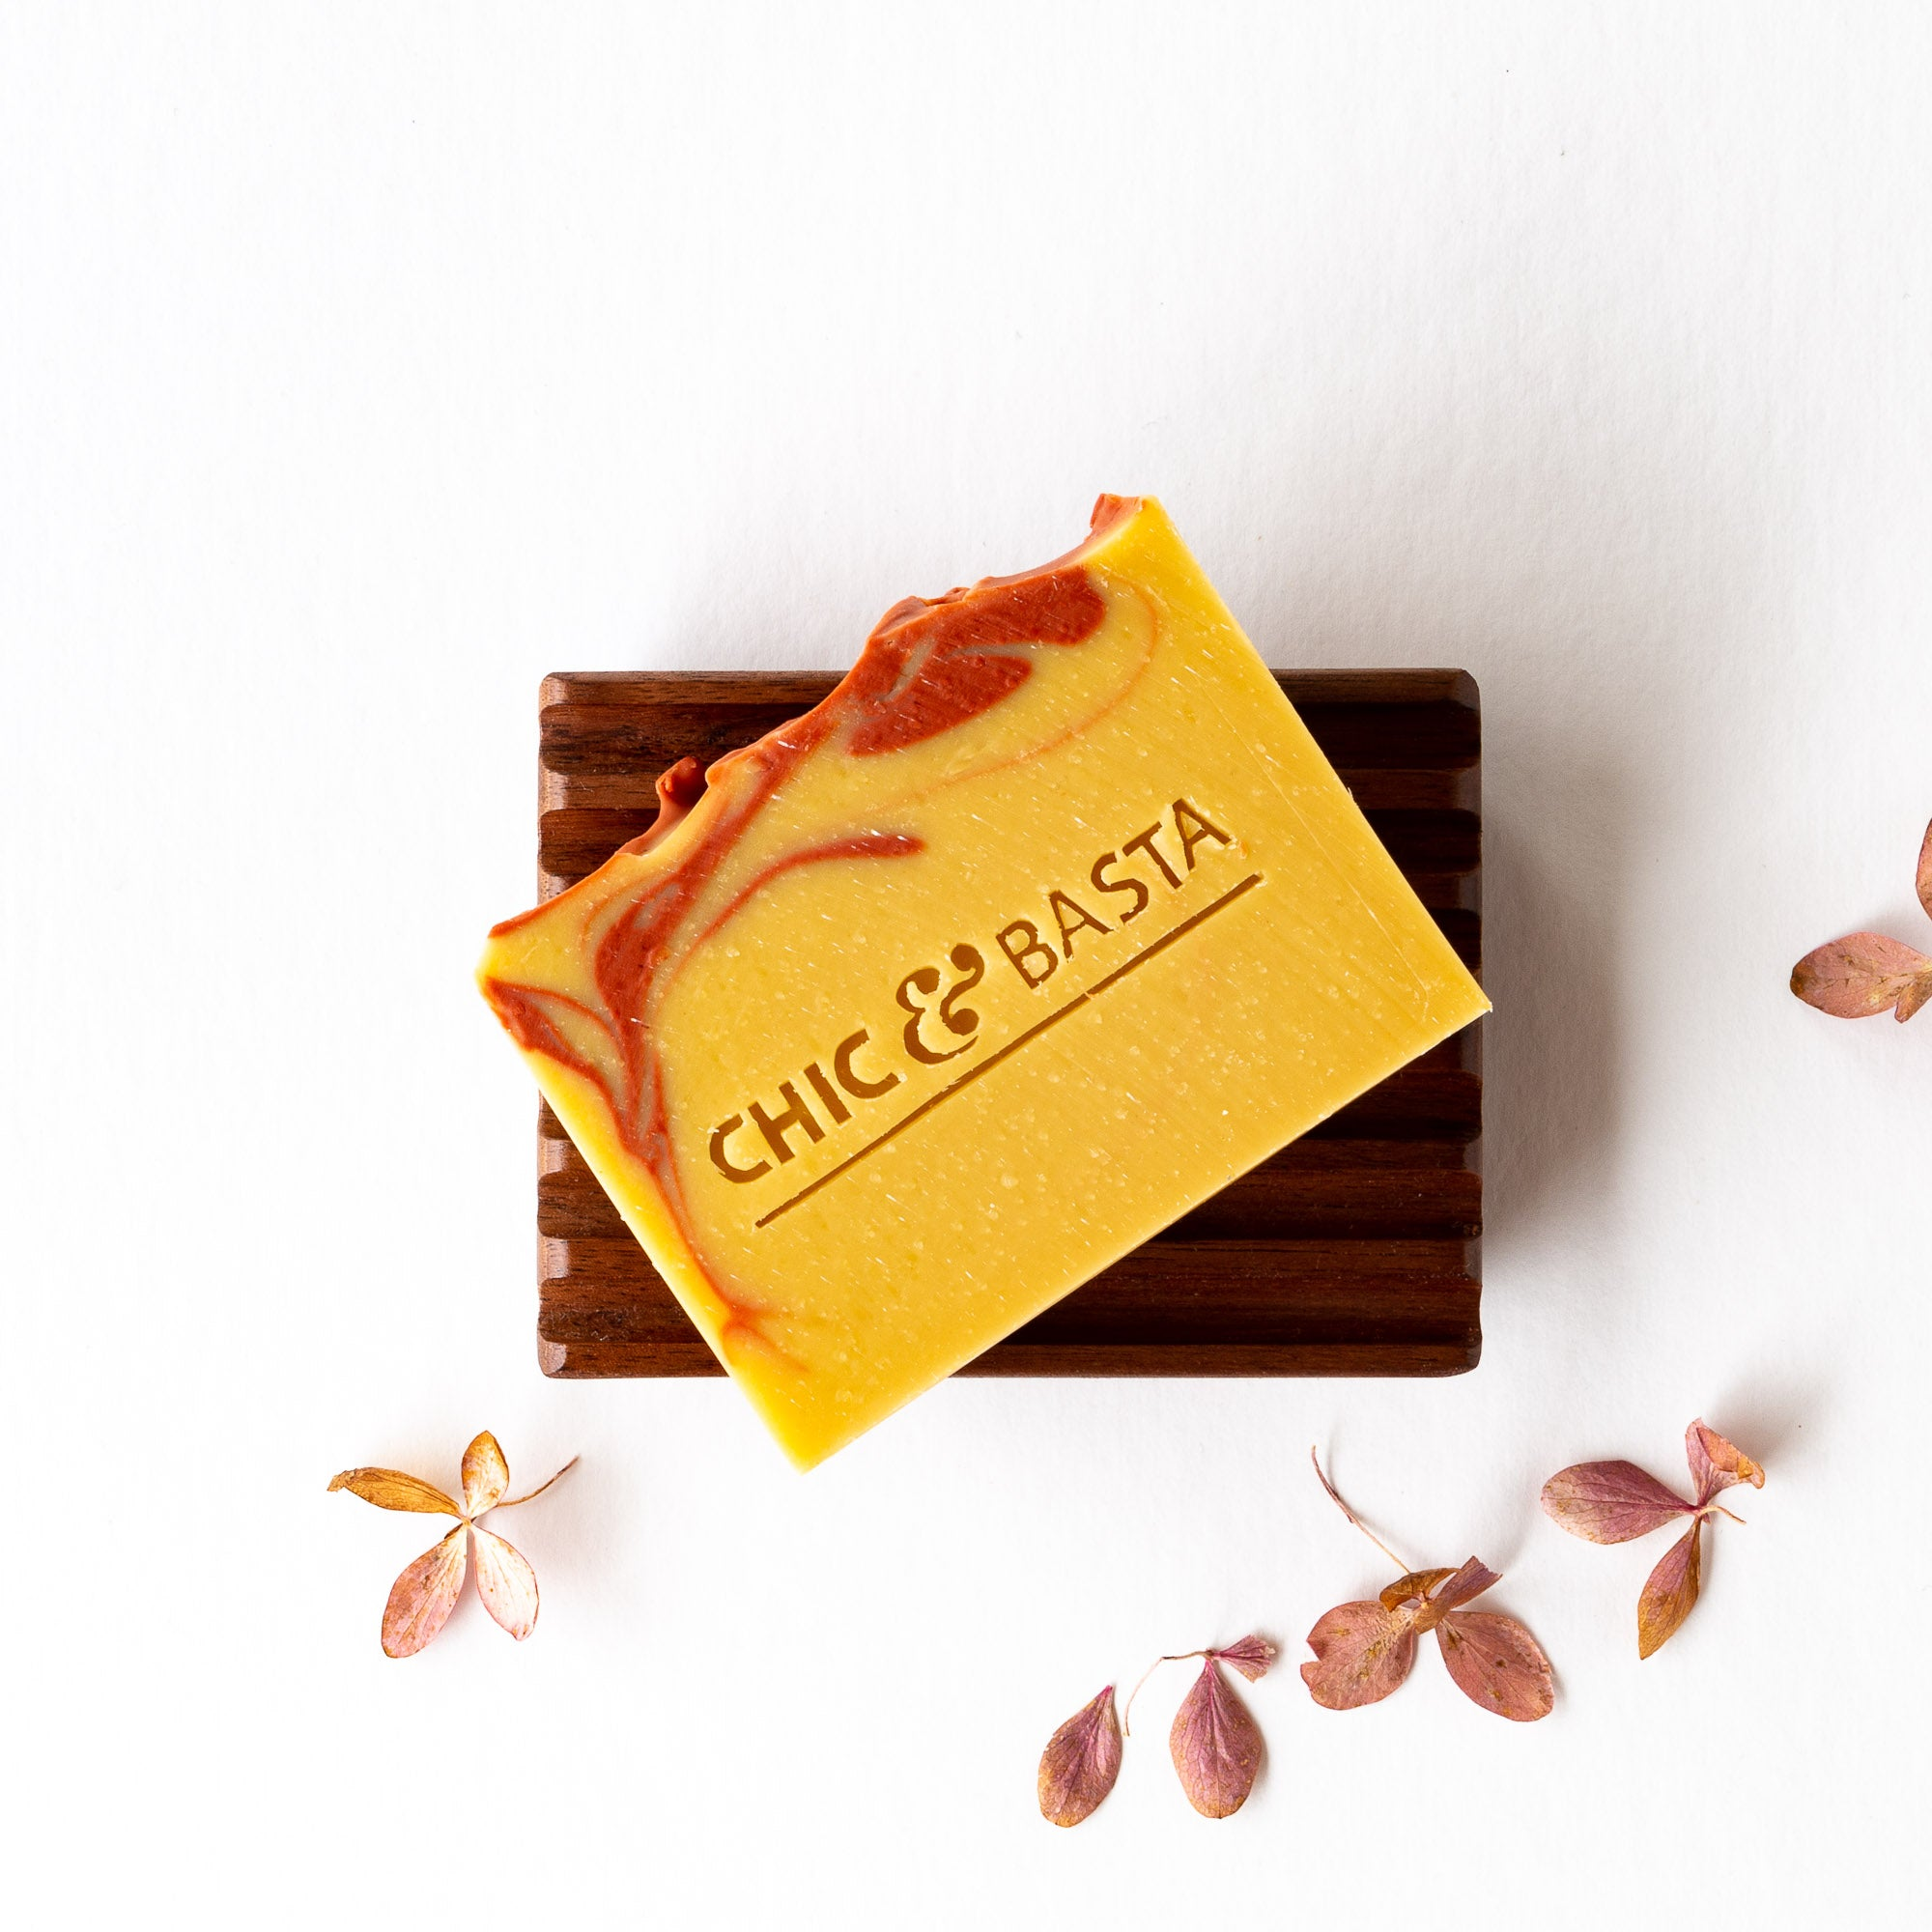 Handcrafted Refreshing Soap With Goat's Milk & Grapefruit - Sold by Chic & Basta